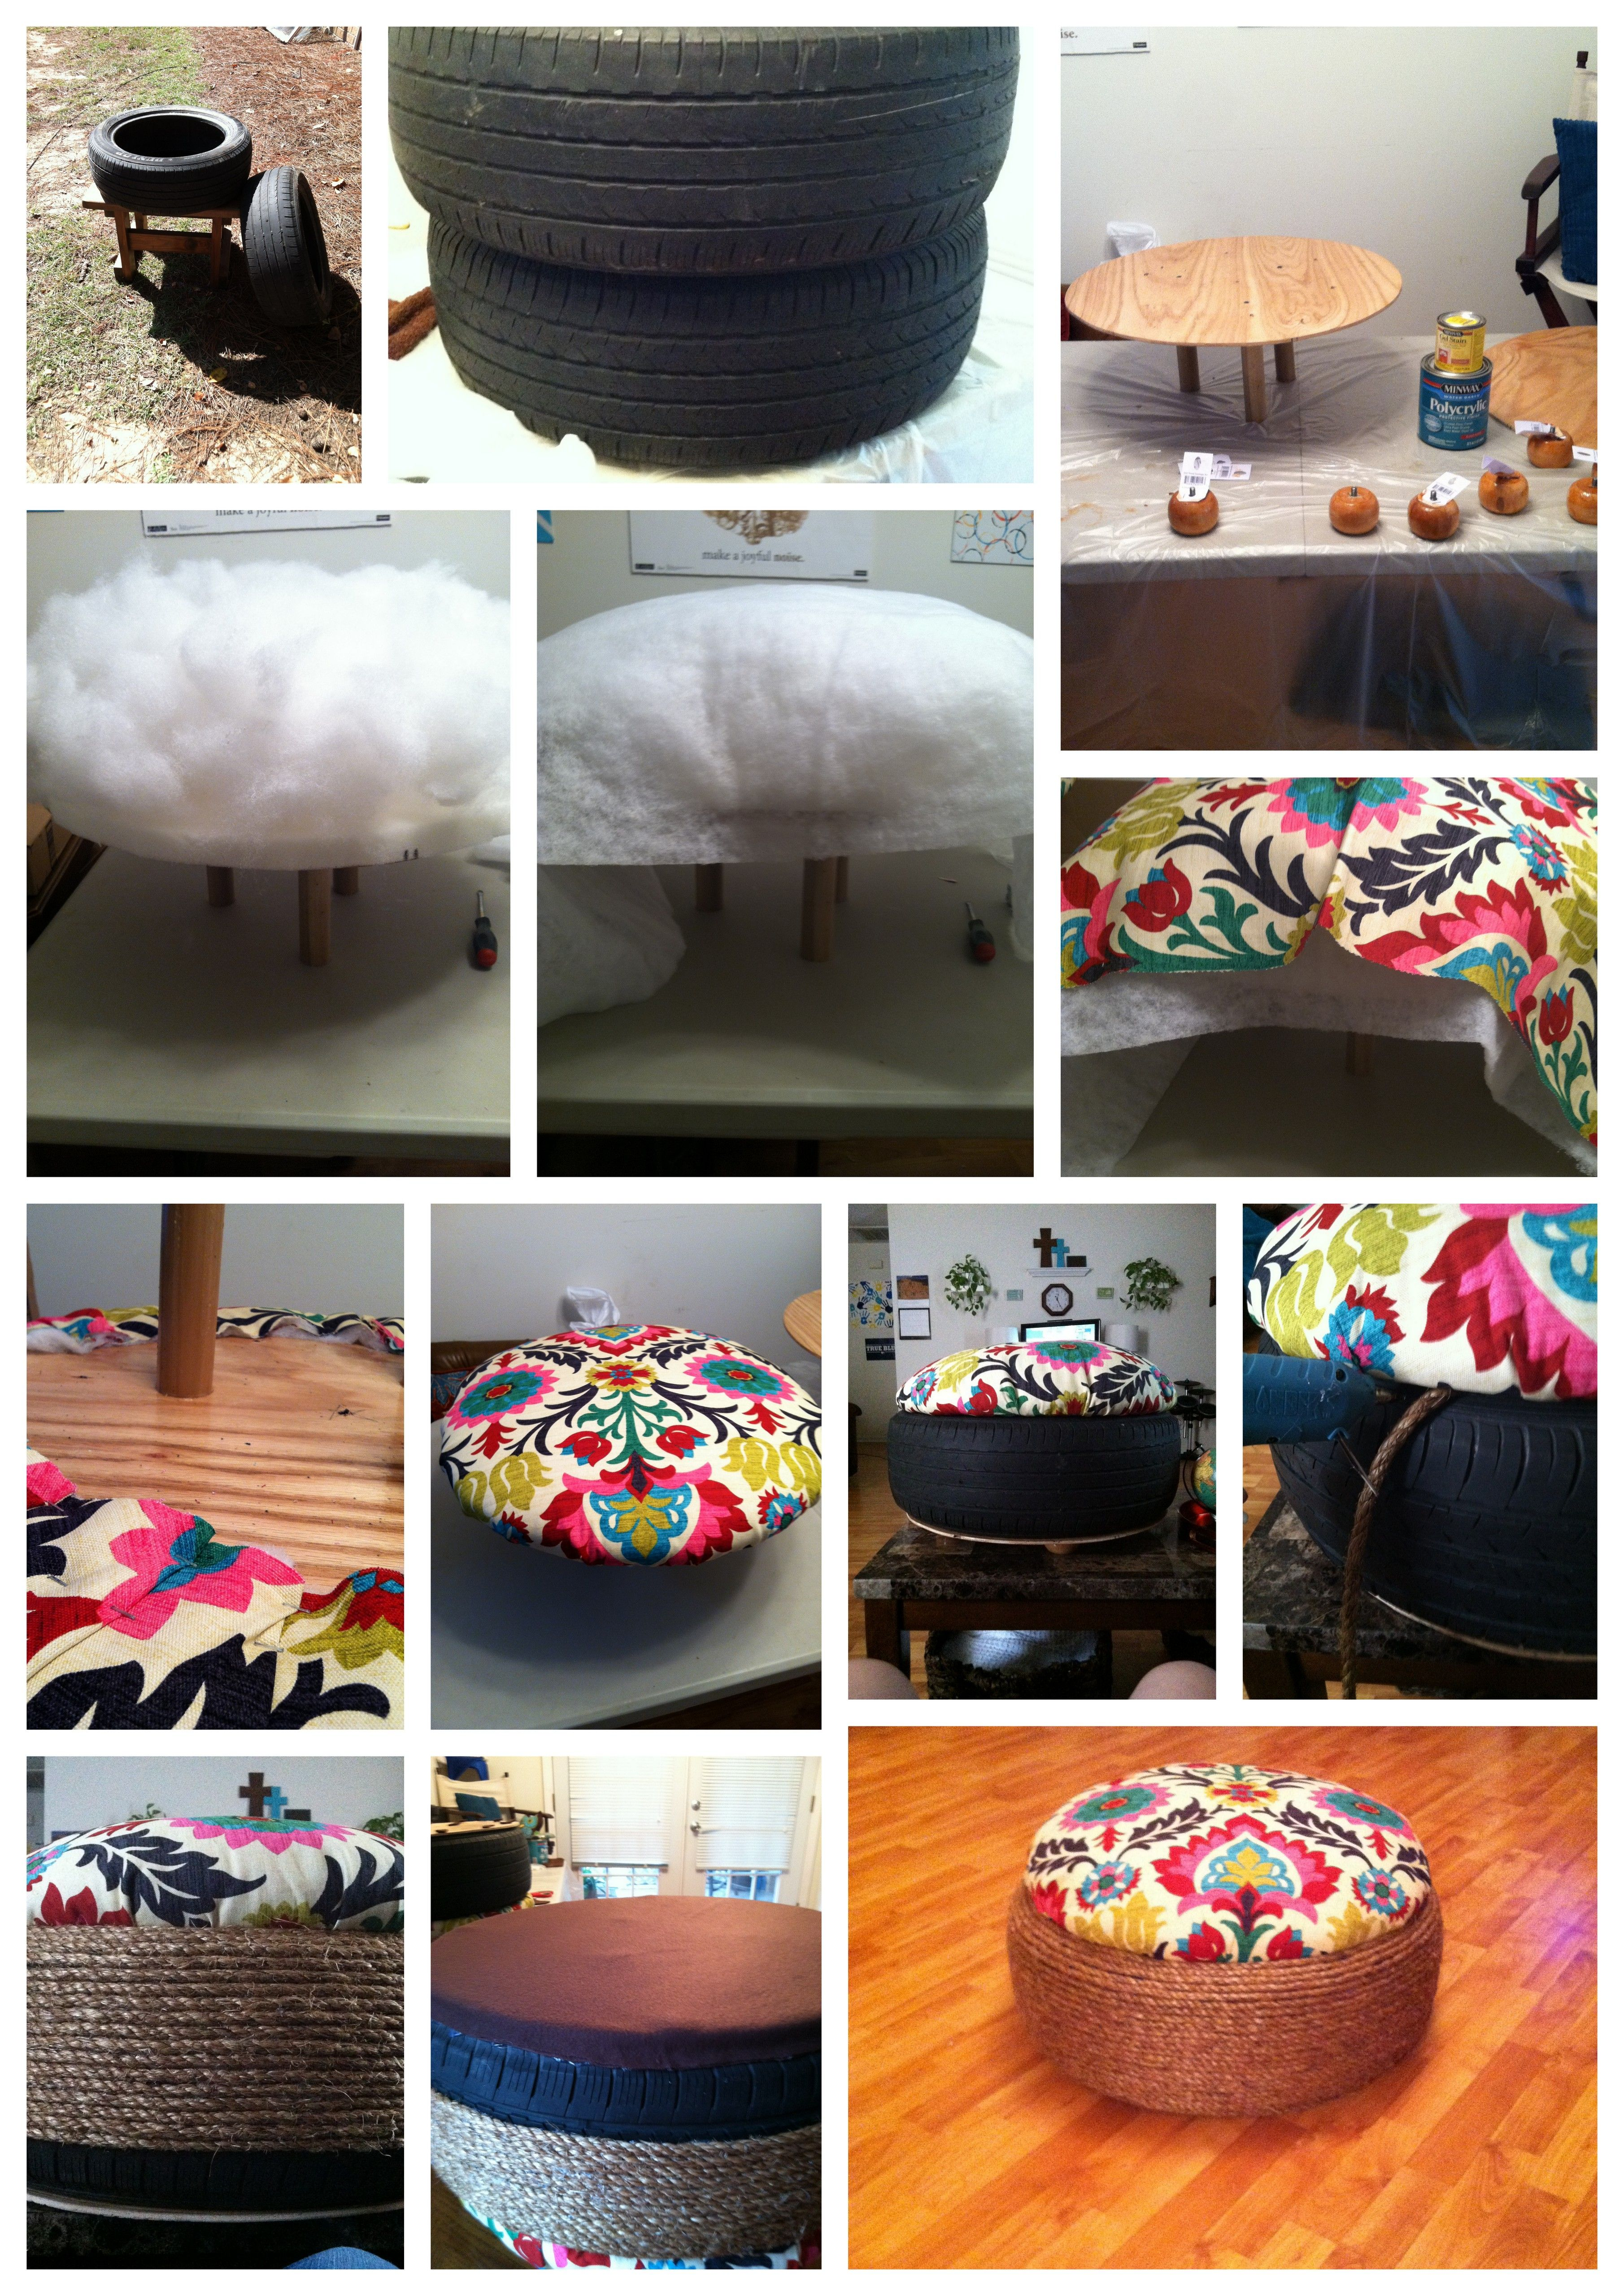 Old tires turned ottomans | DIY Home | Pinterest | Neumaticos ...